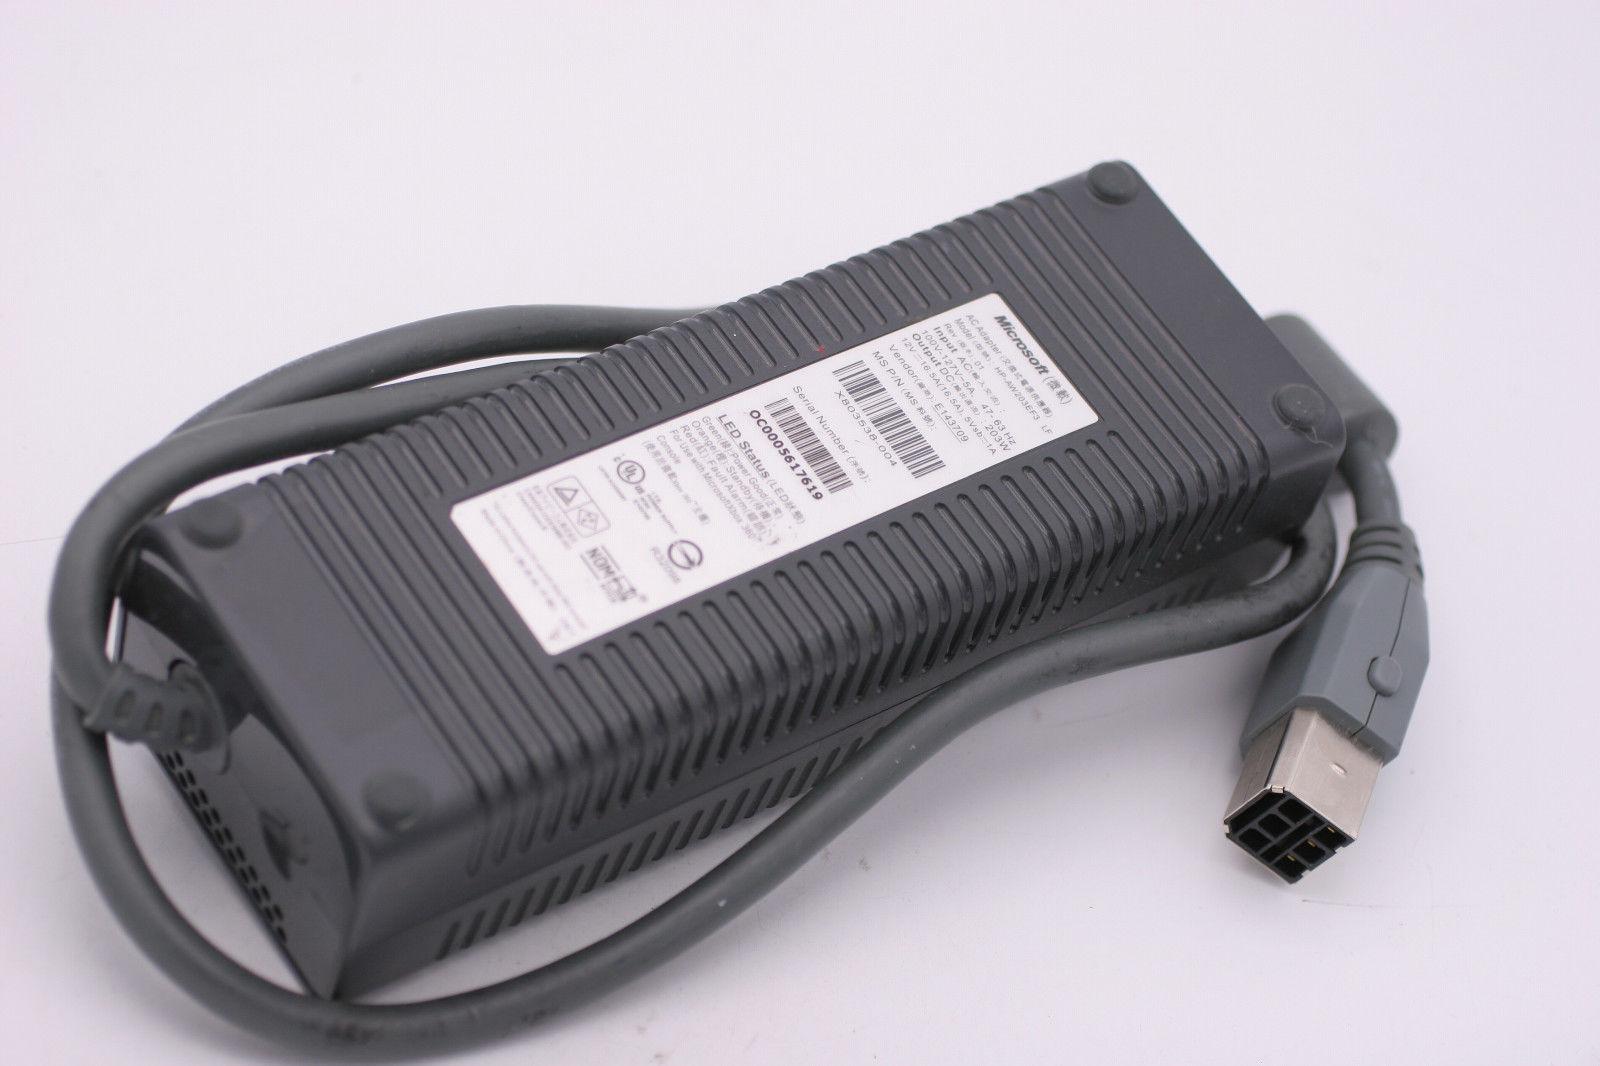 Microsoft HP-AW203EF3LF AC Adapter Power Cord Supply Charger Cable Wire Xbox 360 Genuine Original